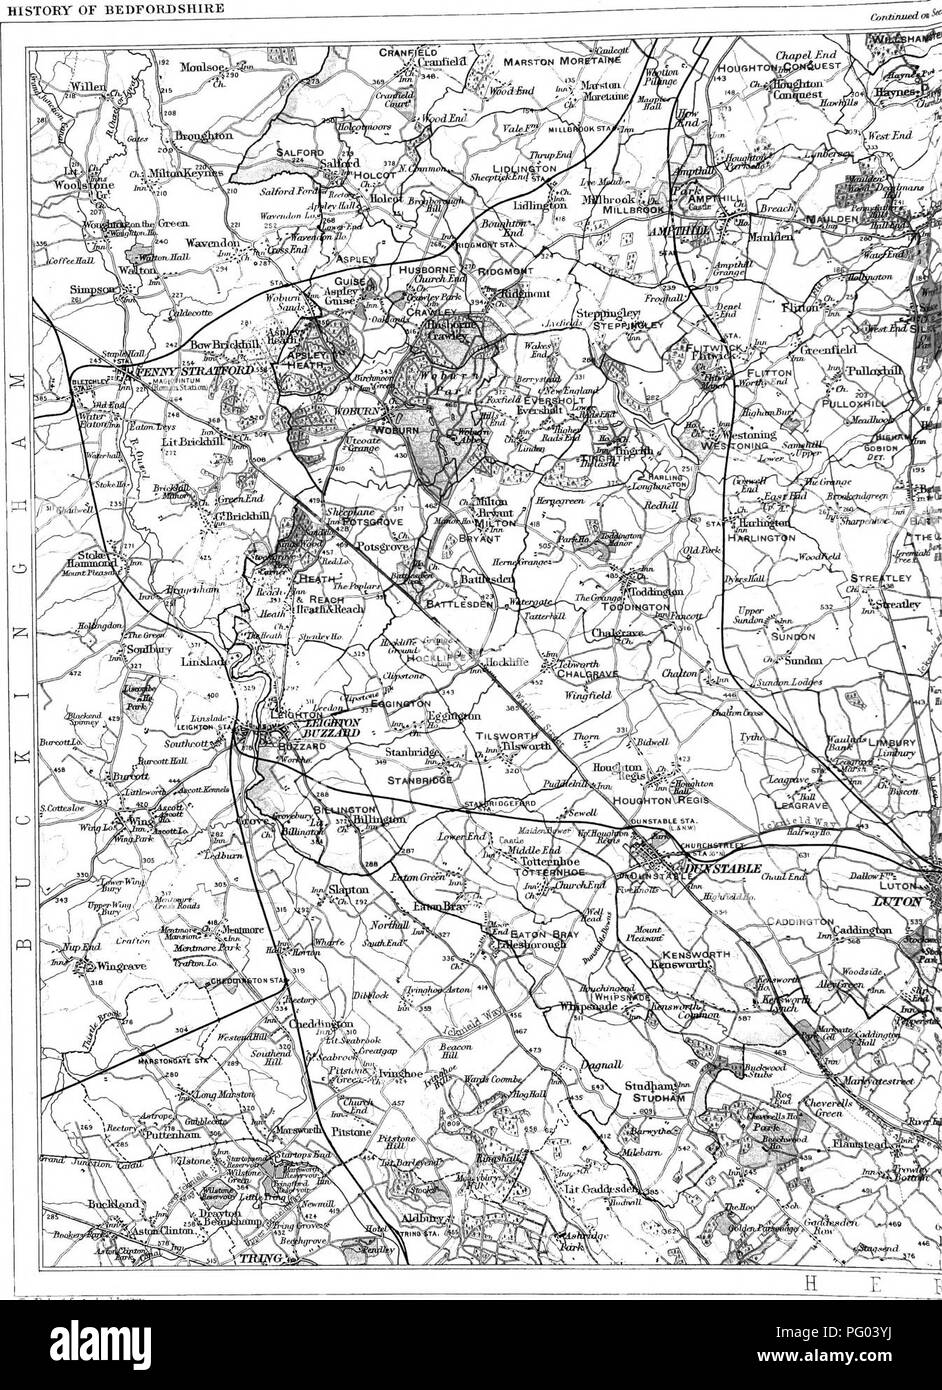 . The Victoria history of the county of Bedford. Natural history. TOPOGRAPHICAL HISTORY OF BEDFORDSHIRE. Hie lajnbmgli Gnngn^lnBiil TiuitJ*o±*- ScslLo 2 ^filiiB tn an lucli Main DriTiag Konds g THE VICTORIA HISTORY OF. Please note that these images are extracted from scanned page images that may have been digitally enhanced for readability - coloration and appearance of these illustrations may not perfectly resemble the original work.. Page, William, 1861-1934, ed; Doubleday, H. Arthur (Herbert Arthur), 1867-1941. Westminster [A. Constable] Stock Photo